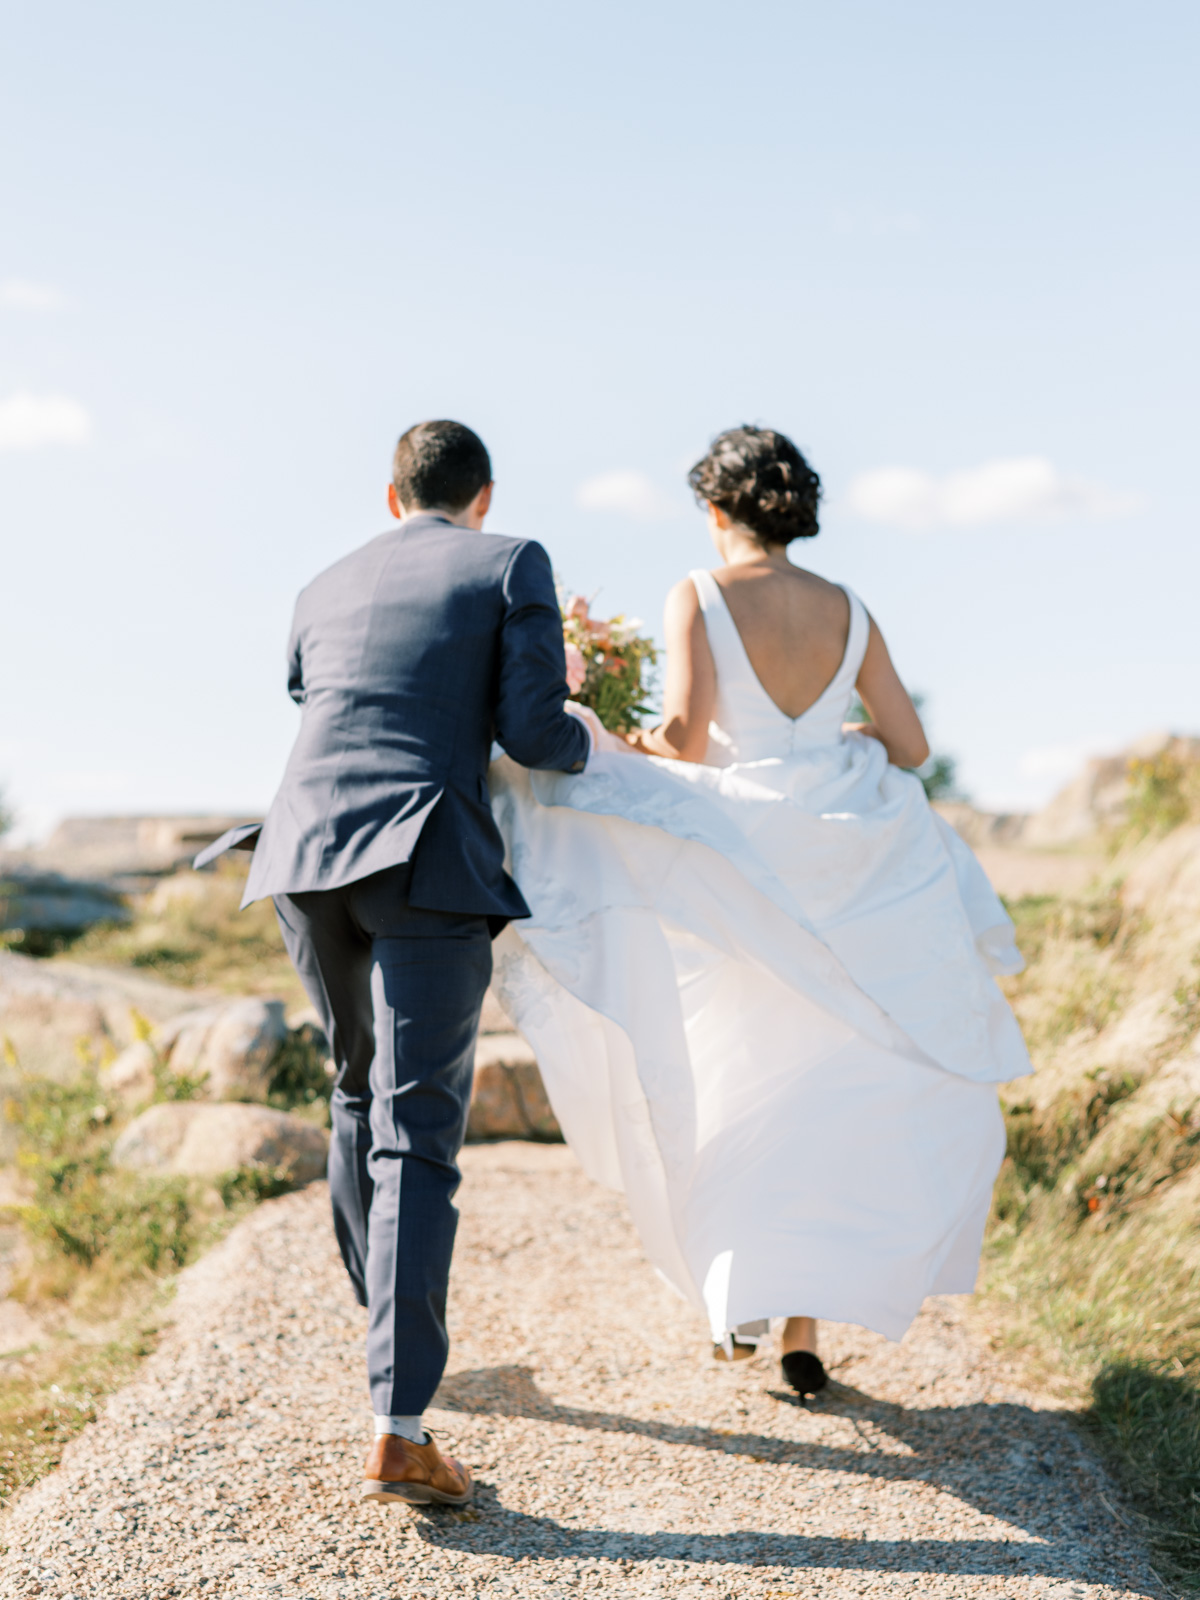 groom holding up brides dress as they walk away on rocky path